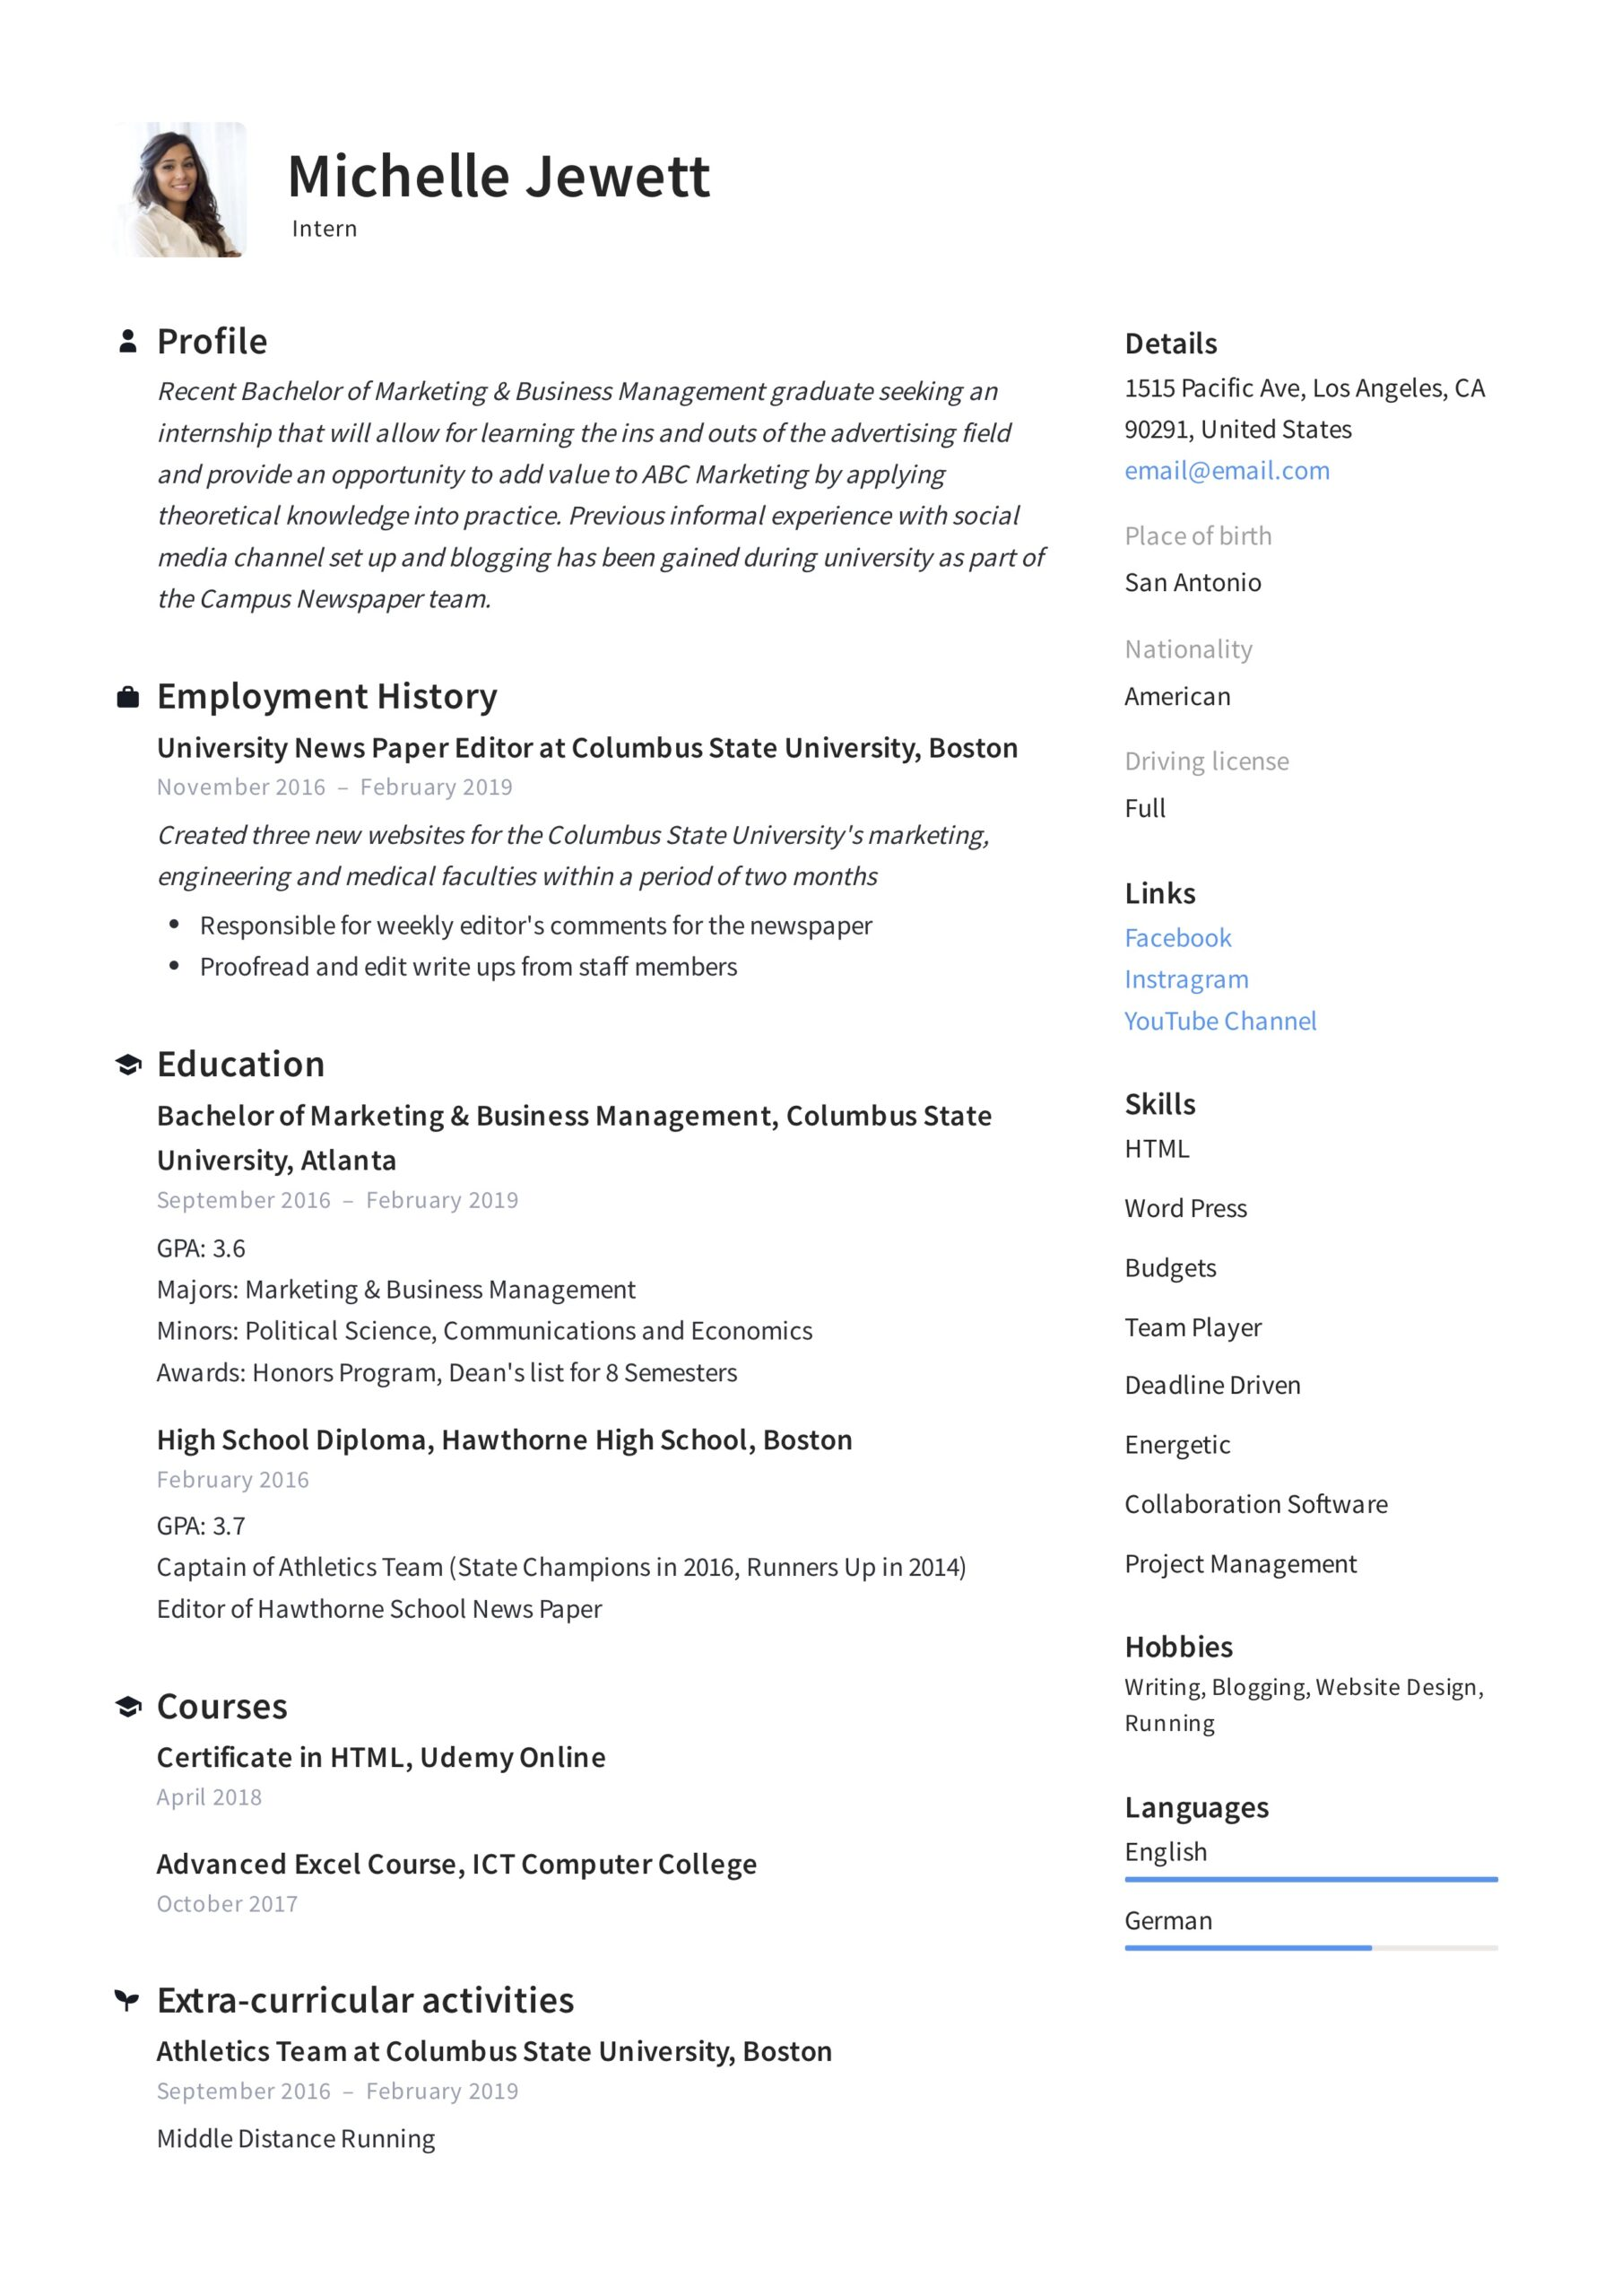 intern resume writing guide samples pdf template with internship experience example Resume Resume Template With Internship Experience